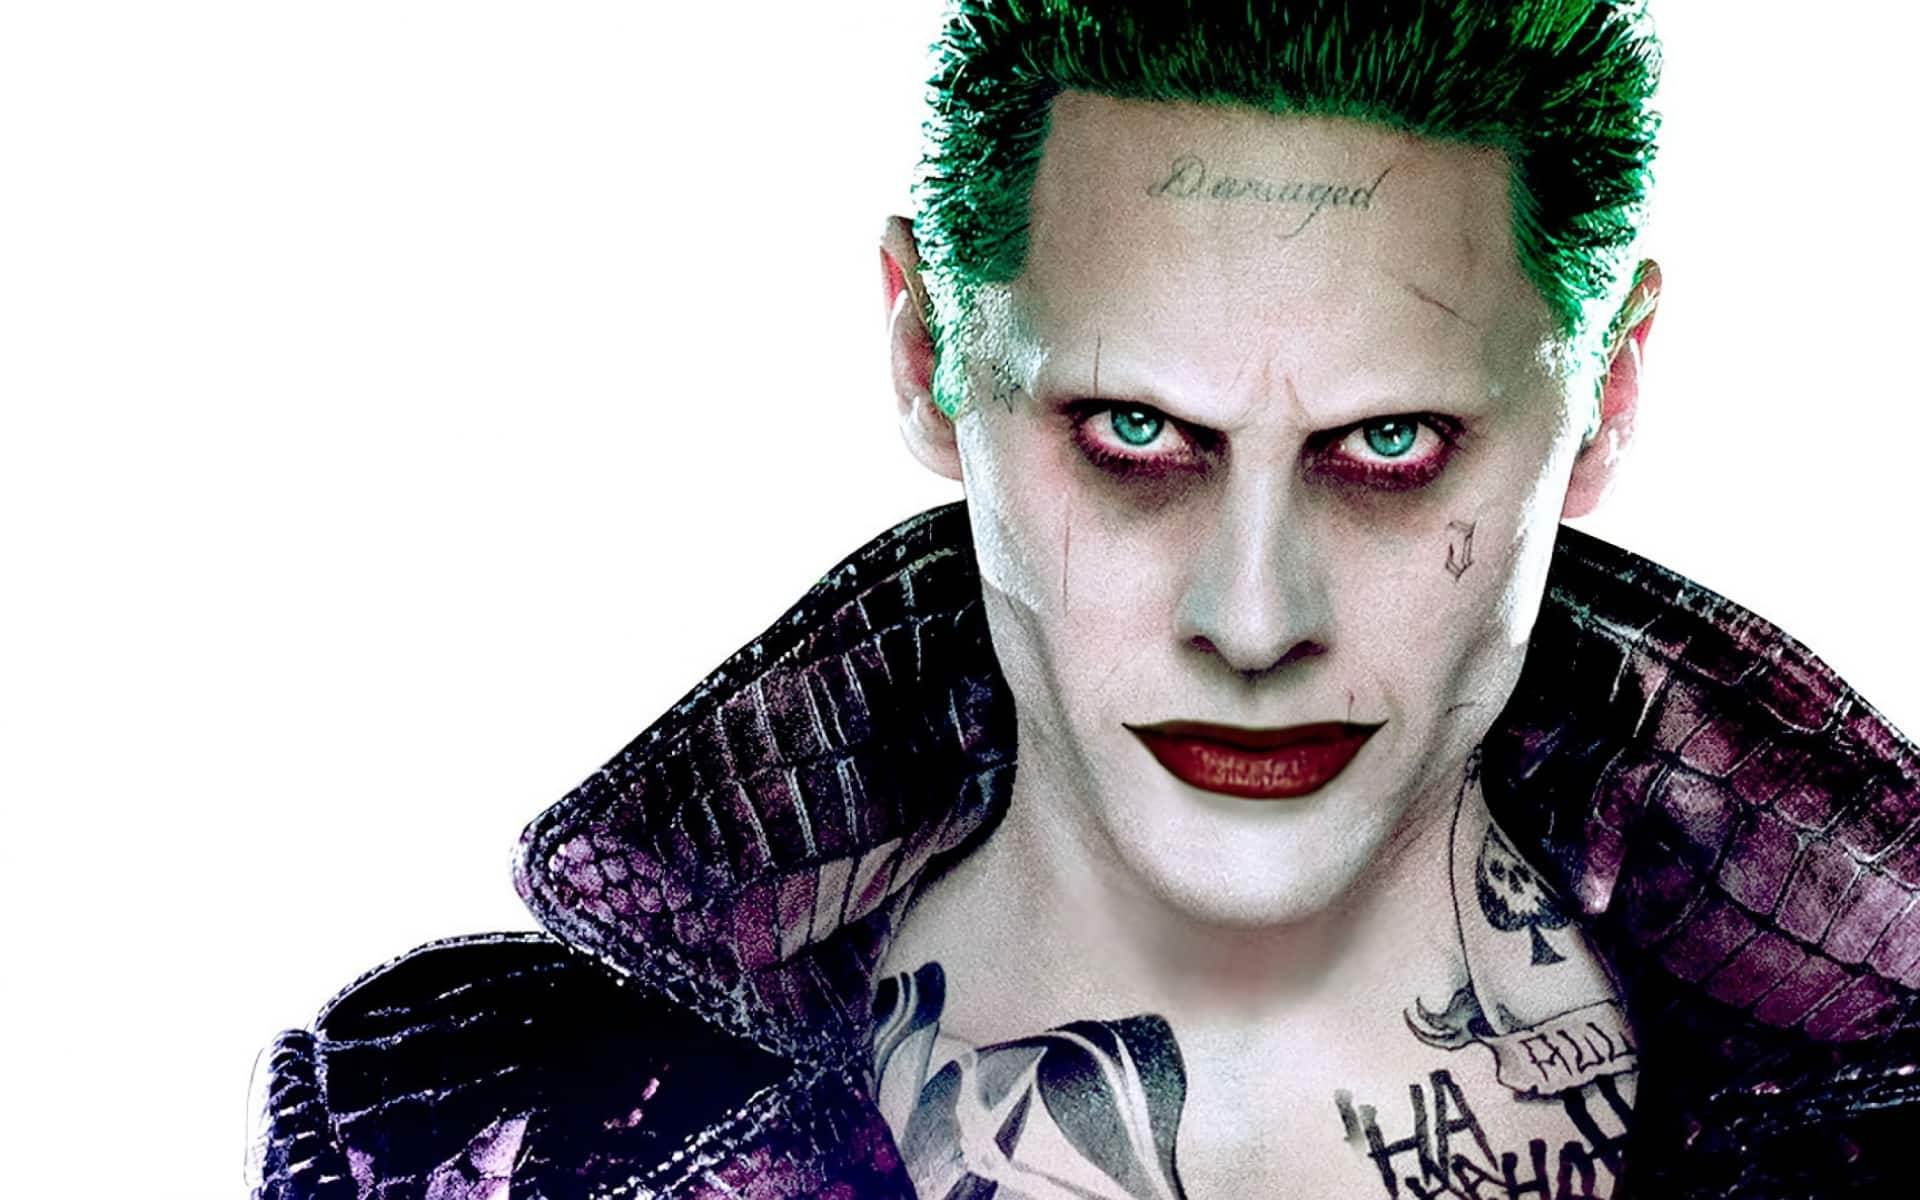 I'm Proud To Be A Part Of It: Jared Leto On Playing 'The Joker' In The DC Extended Universe